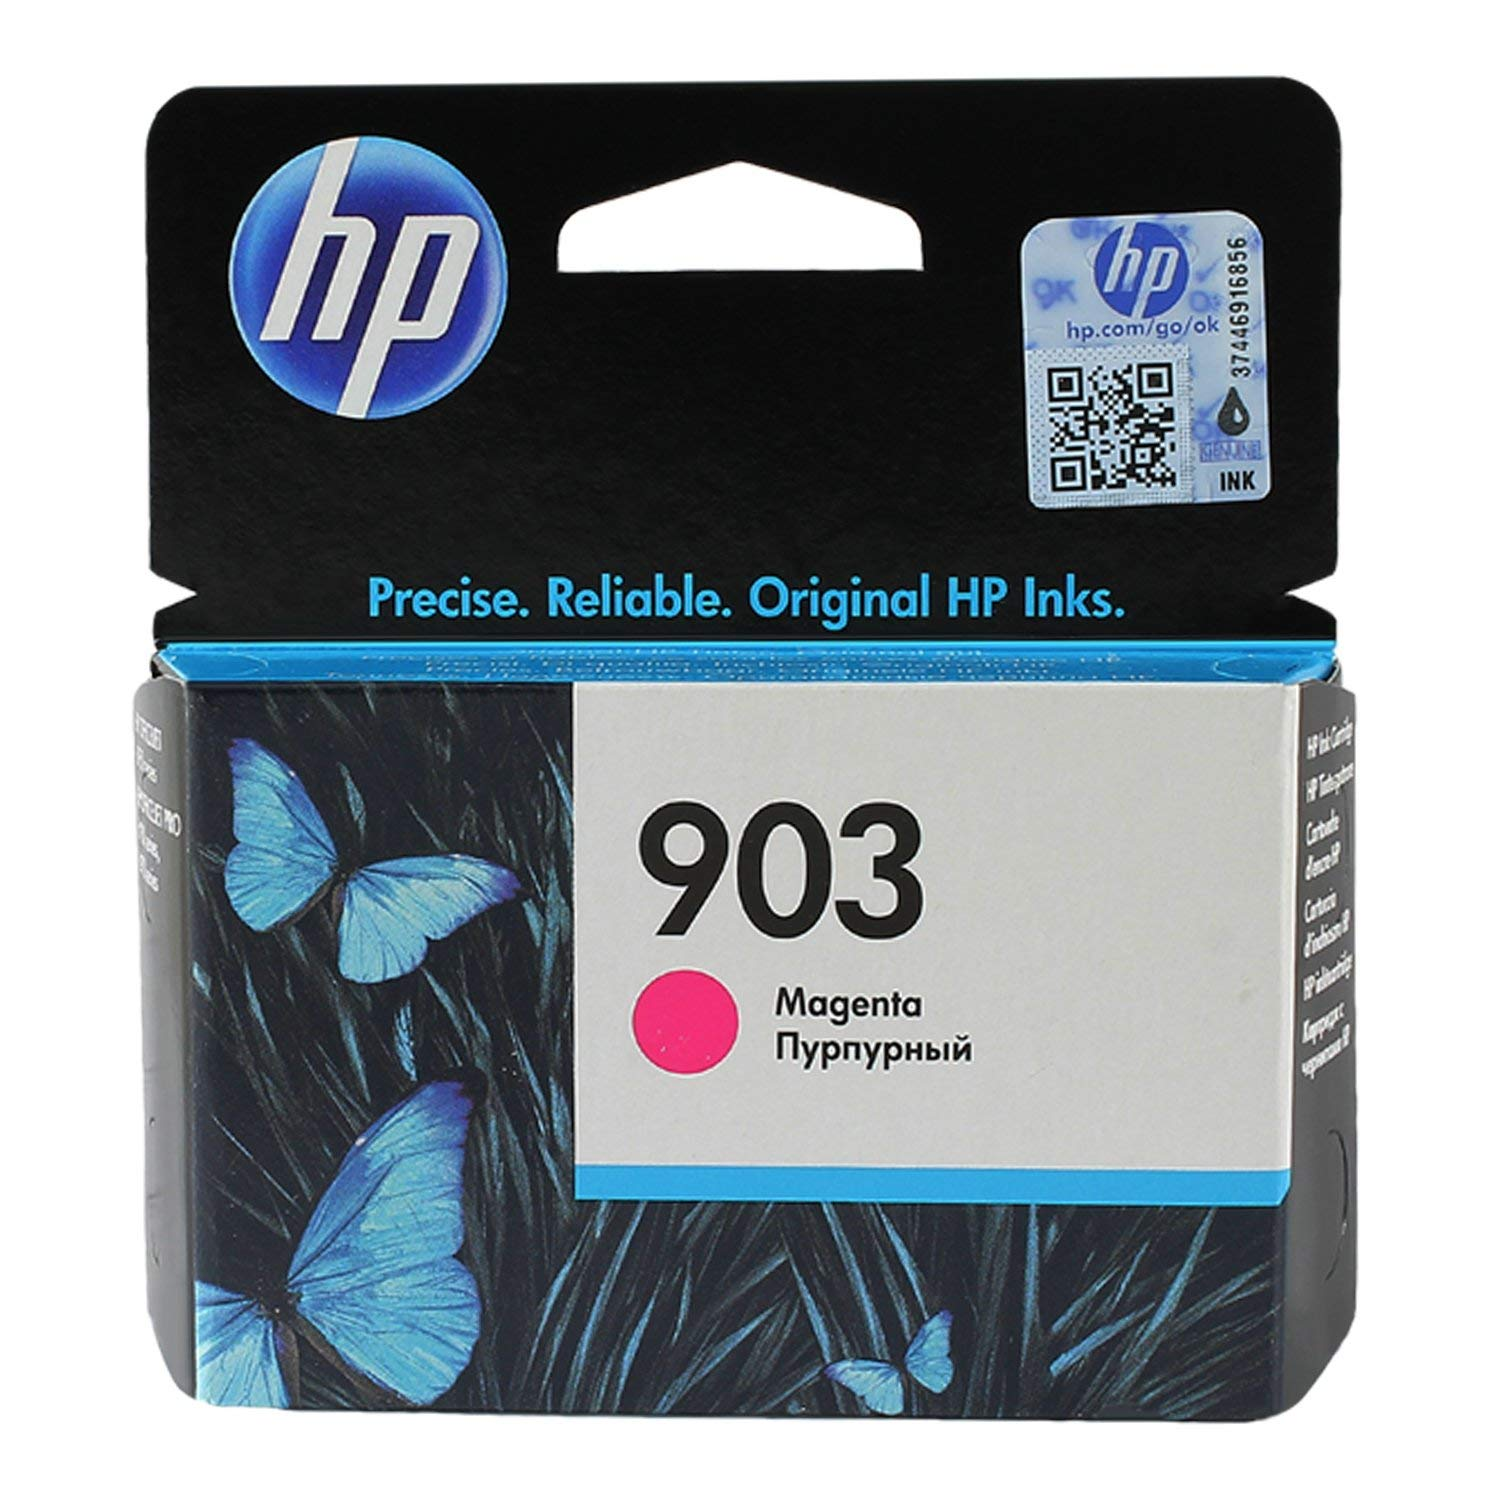 HP 903 (T6L91AE) Original Ink Cartridge - Magenta